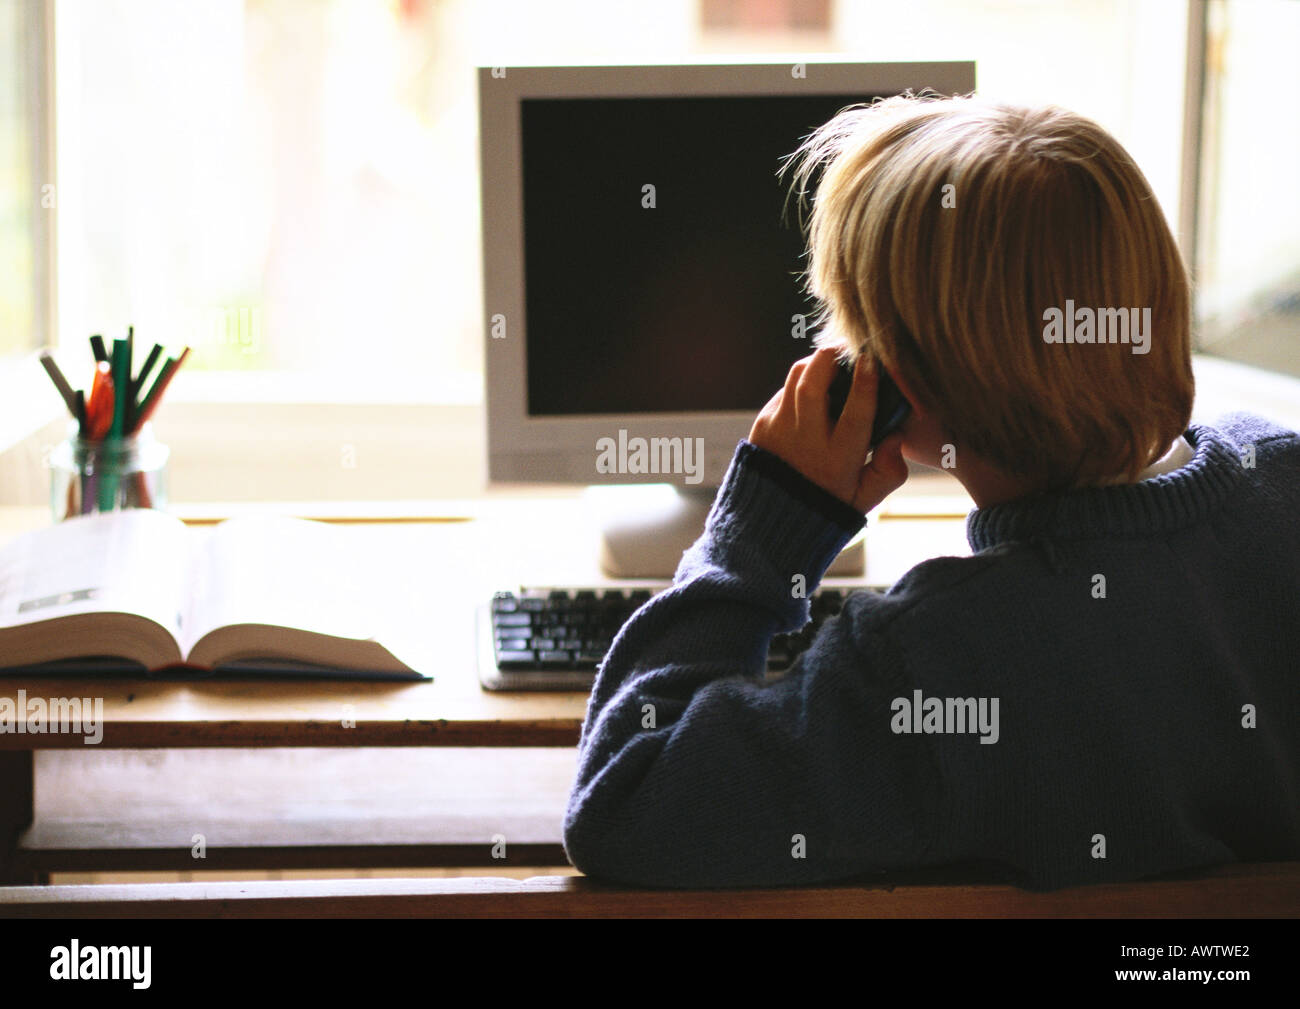 Young boy sitting at computer talking on phone, rear view - Stock Image